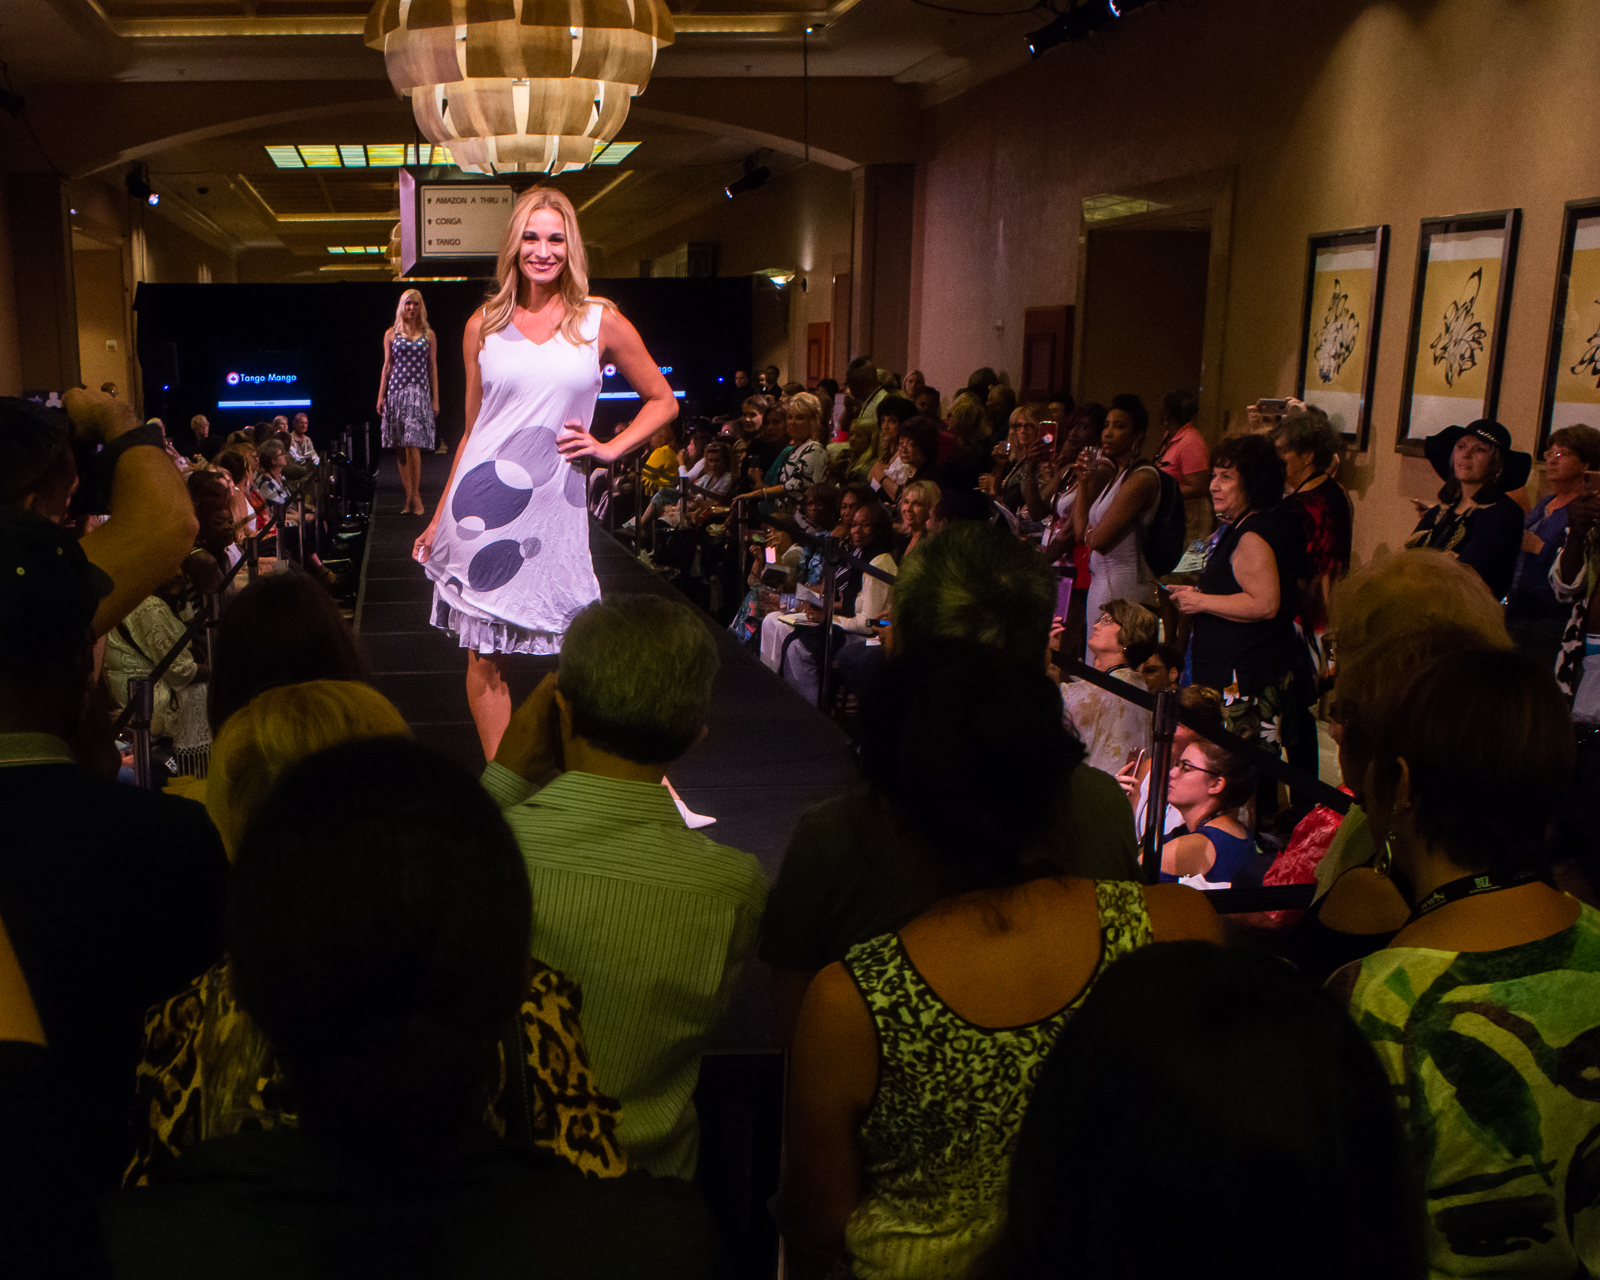 We experienced a cool fashion show at the kick off of WWIN.